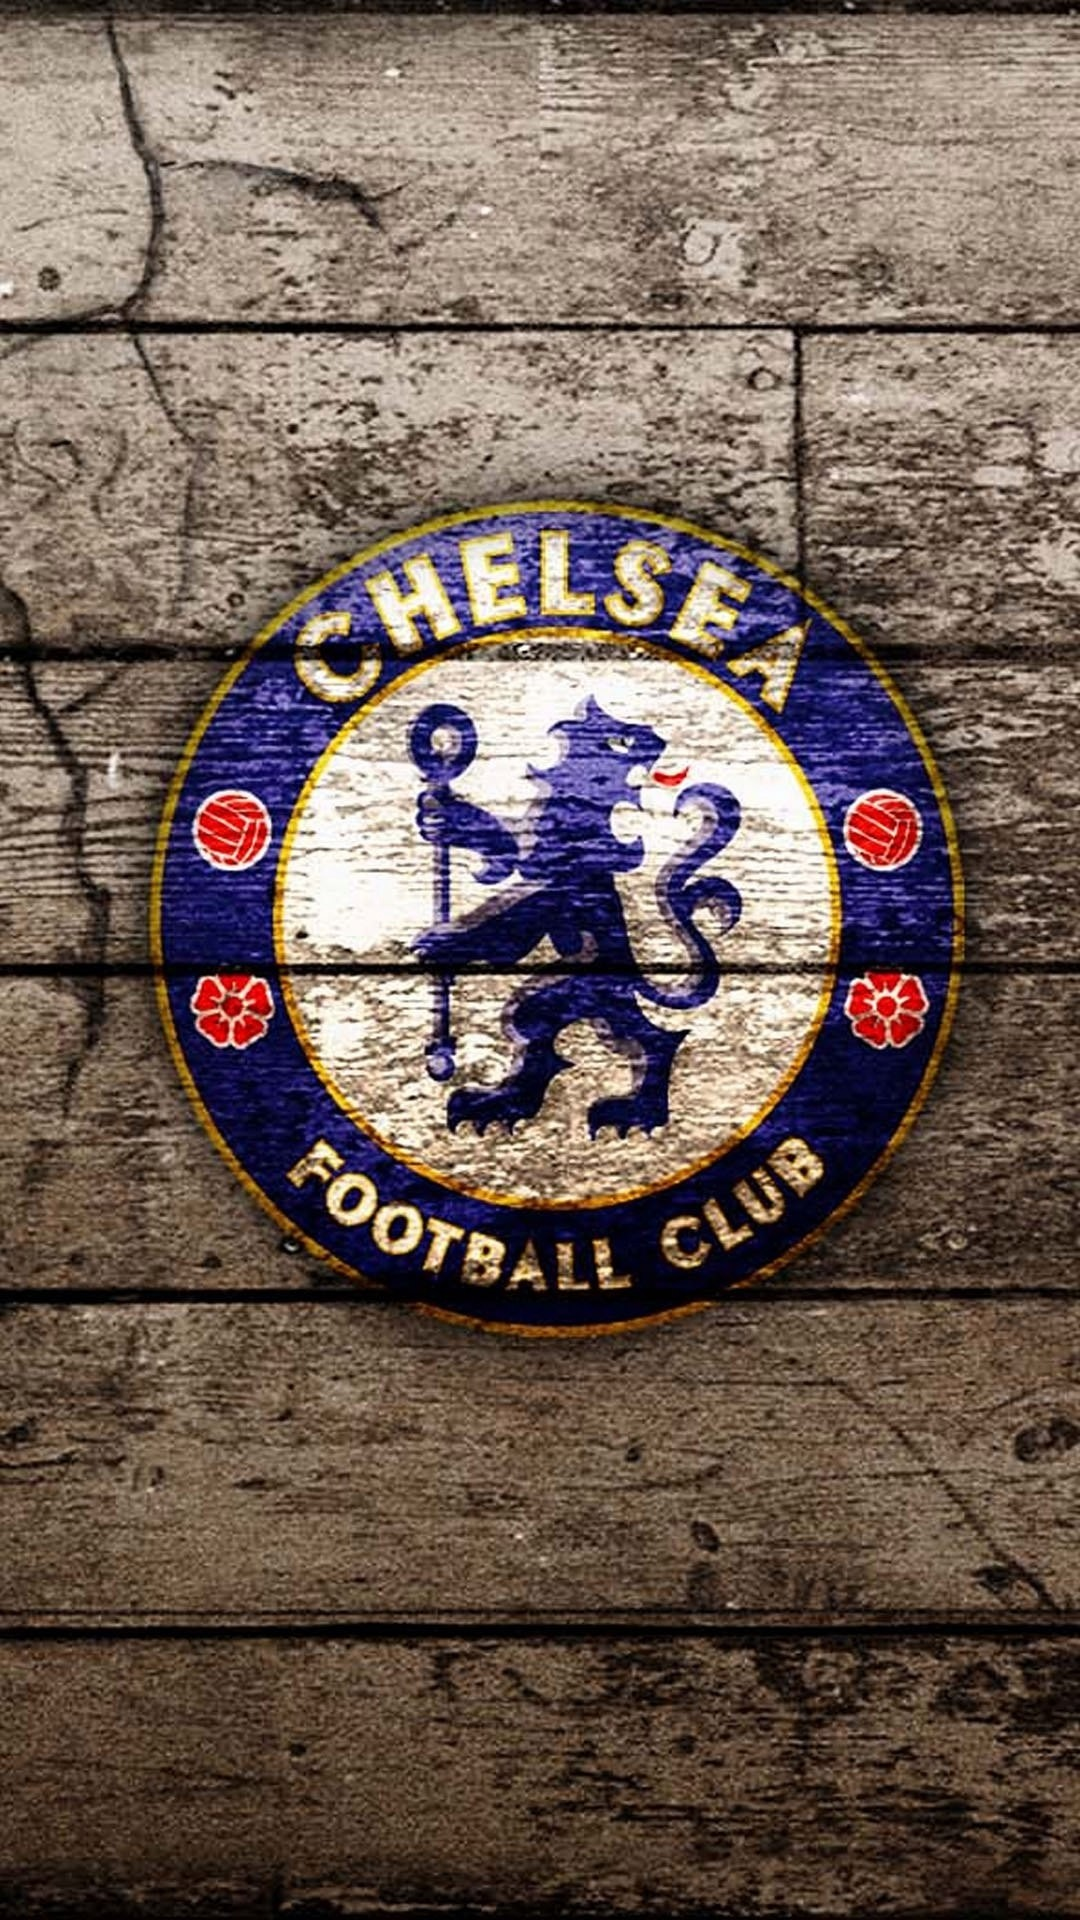 Chelsea football club wallpapers wallpapertag - Chelsea fc wallpaper android hd ...